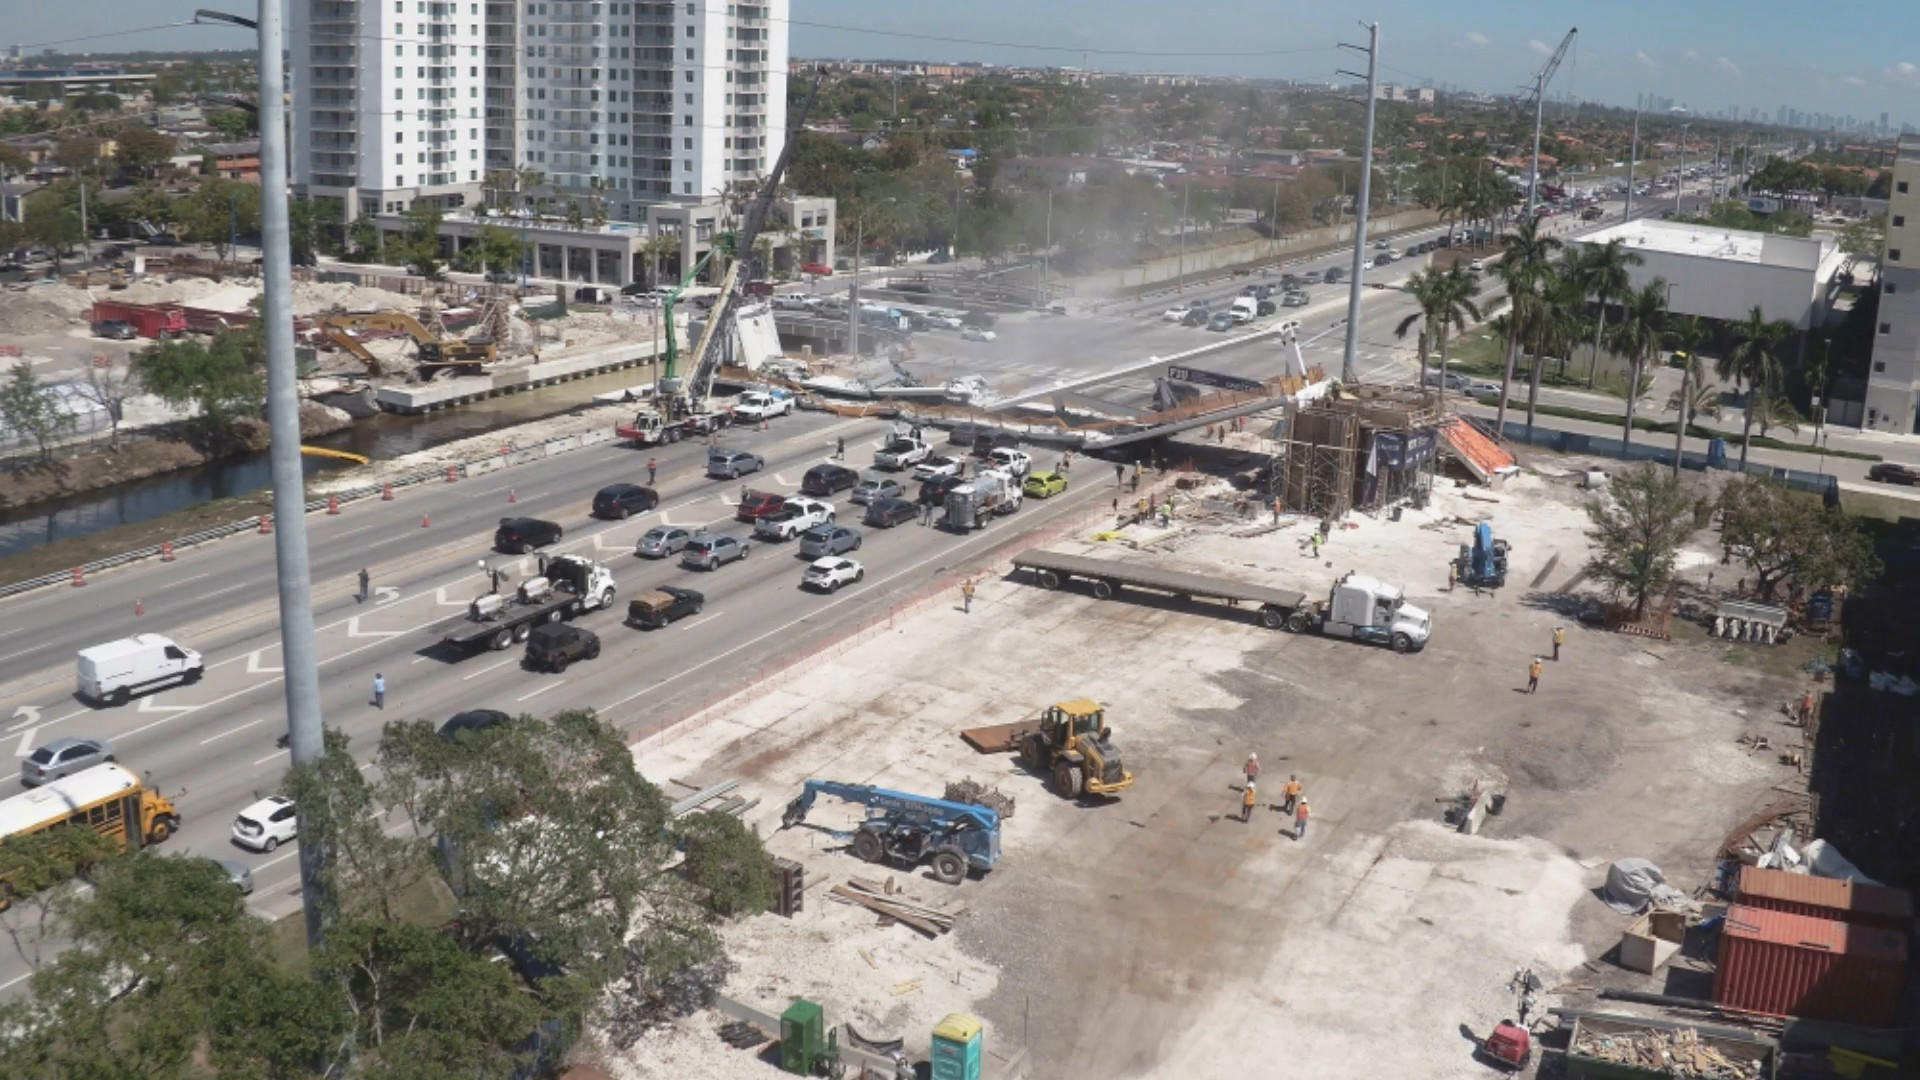 Key design flaws found in FIU bridge that had deadly collapse